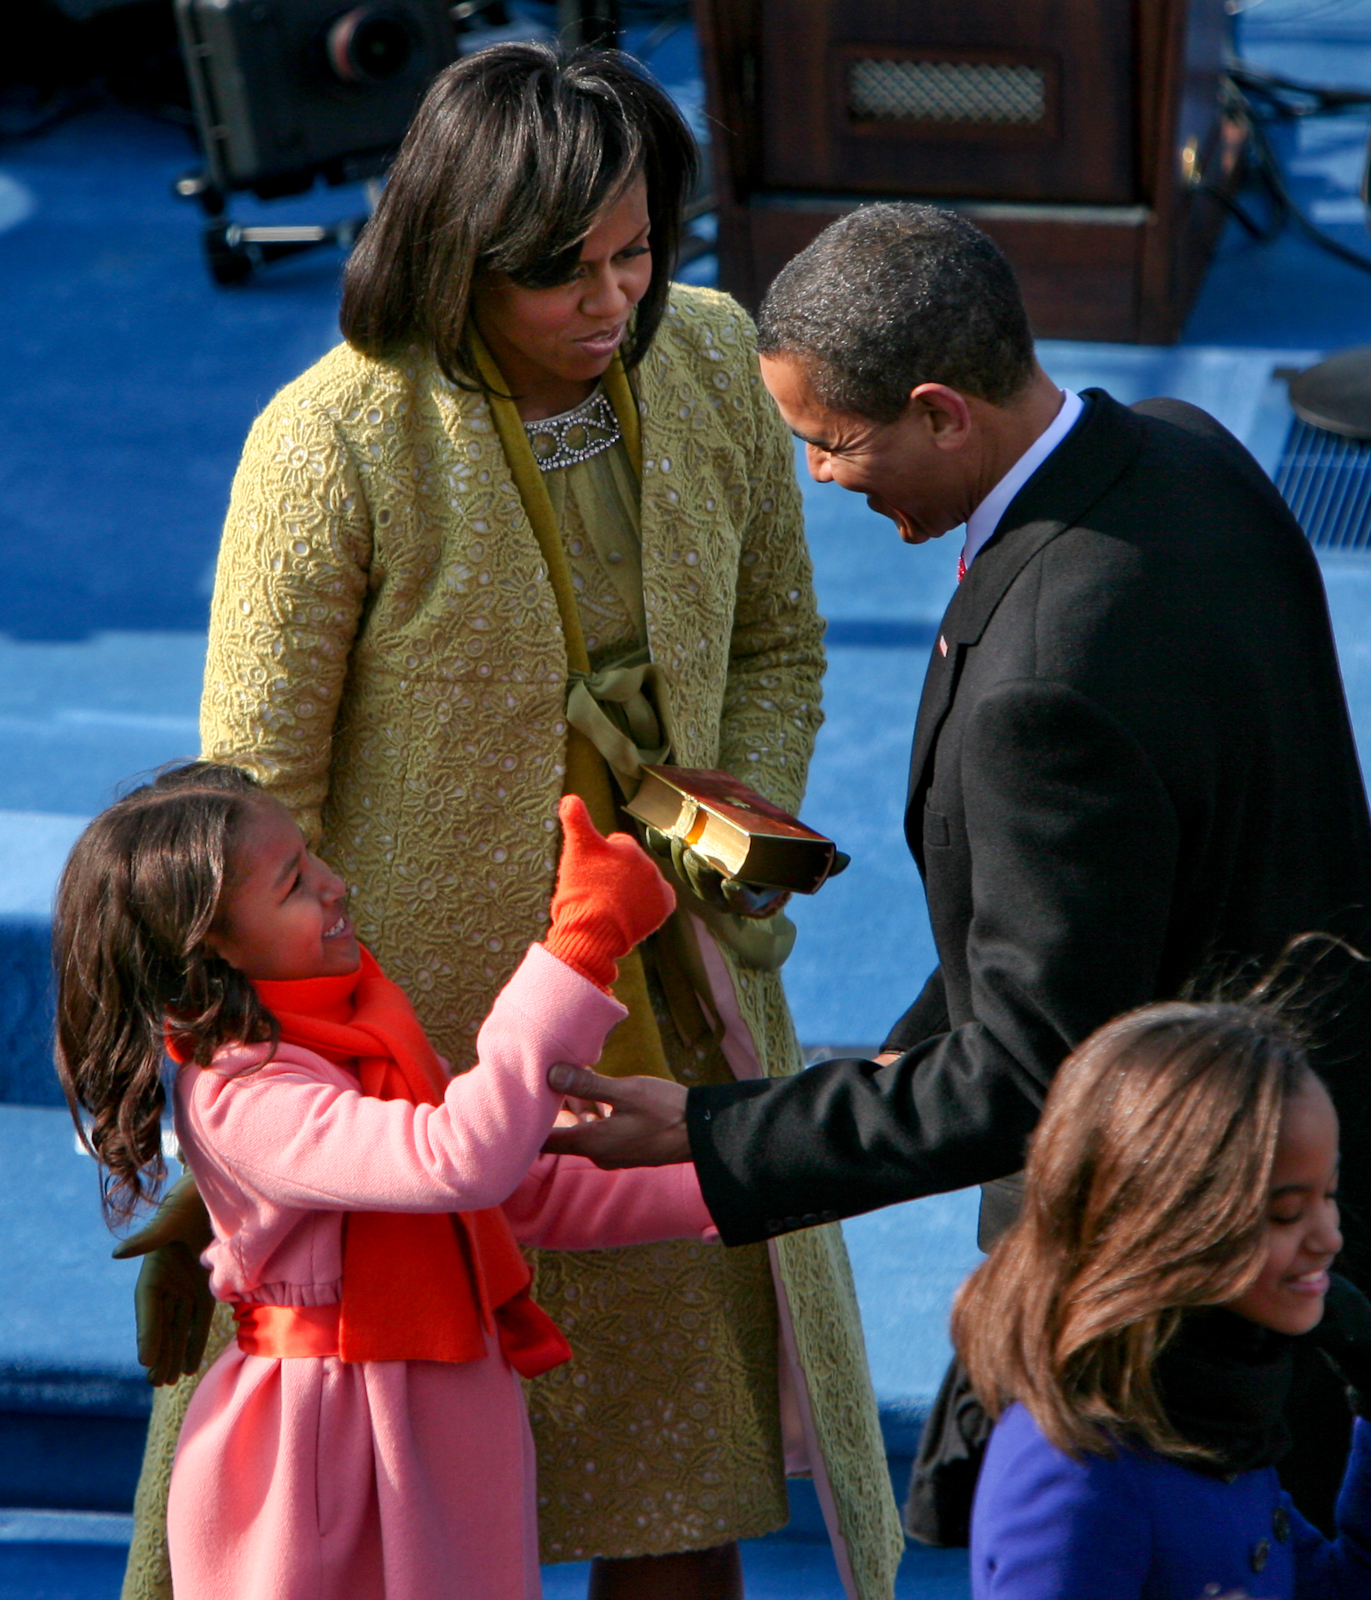 The Inauguration of President Obama